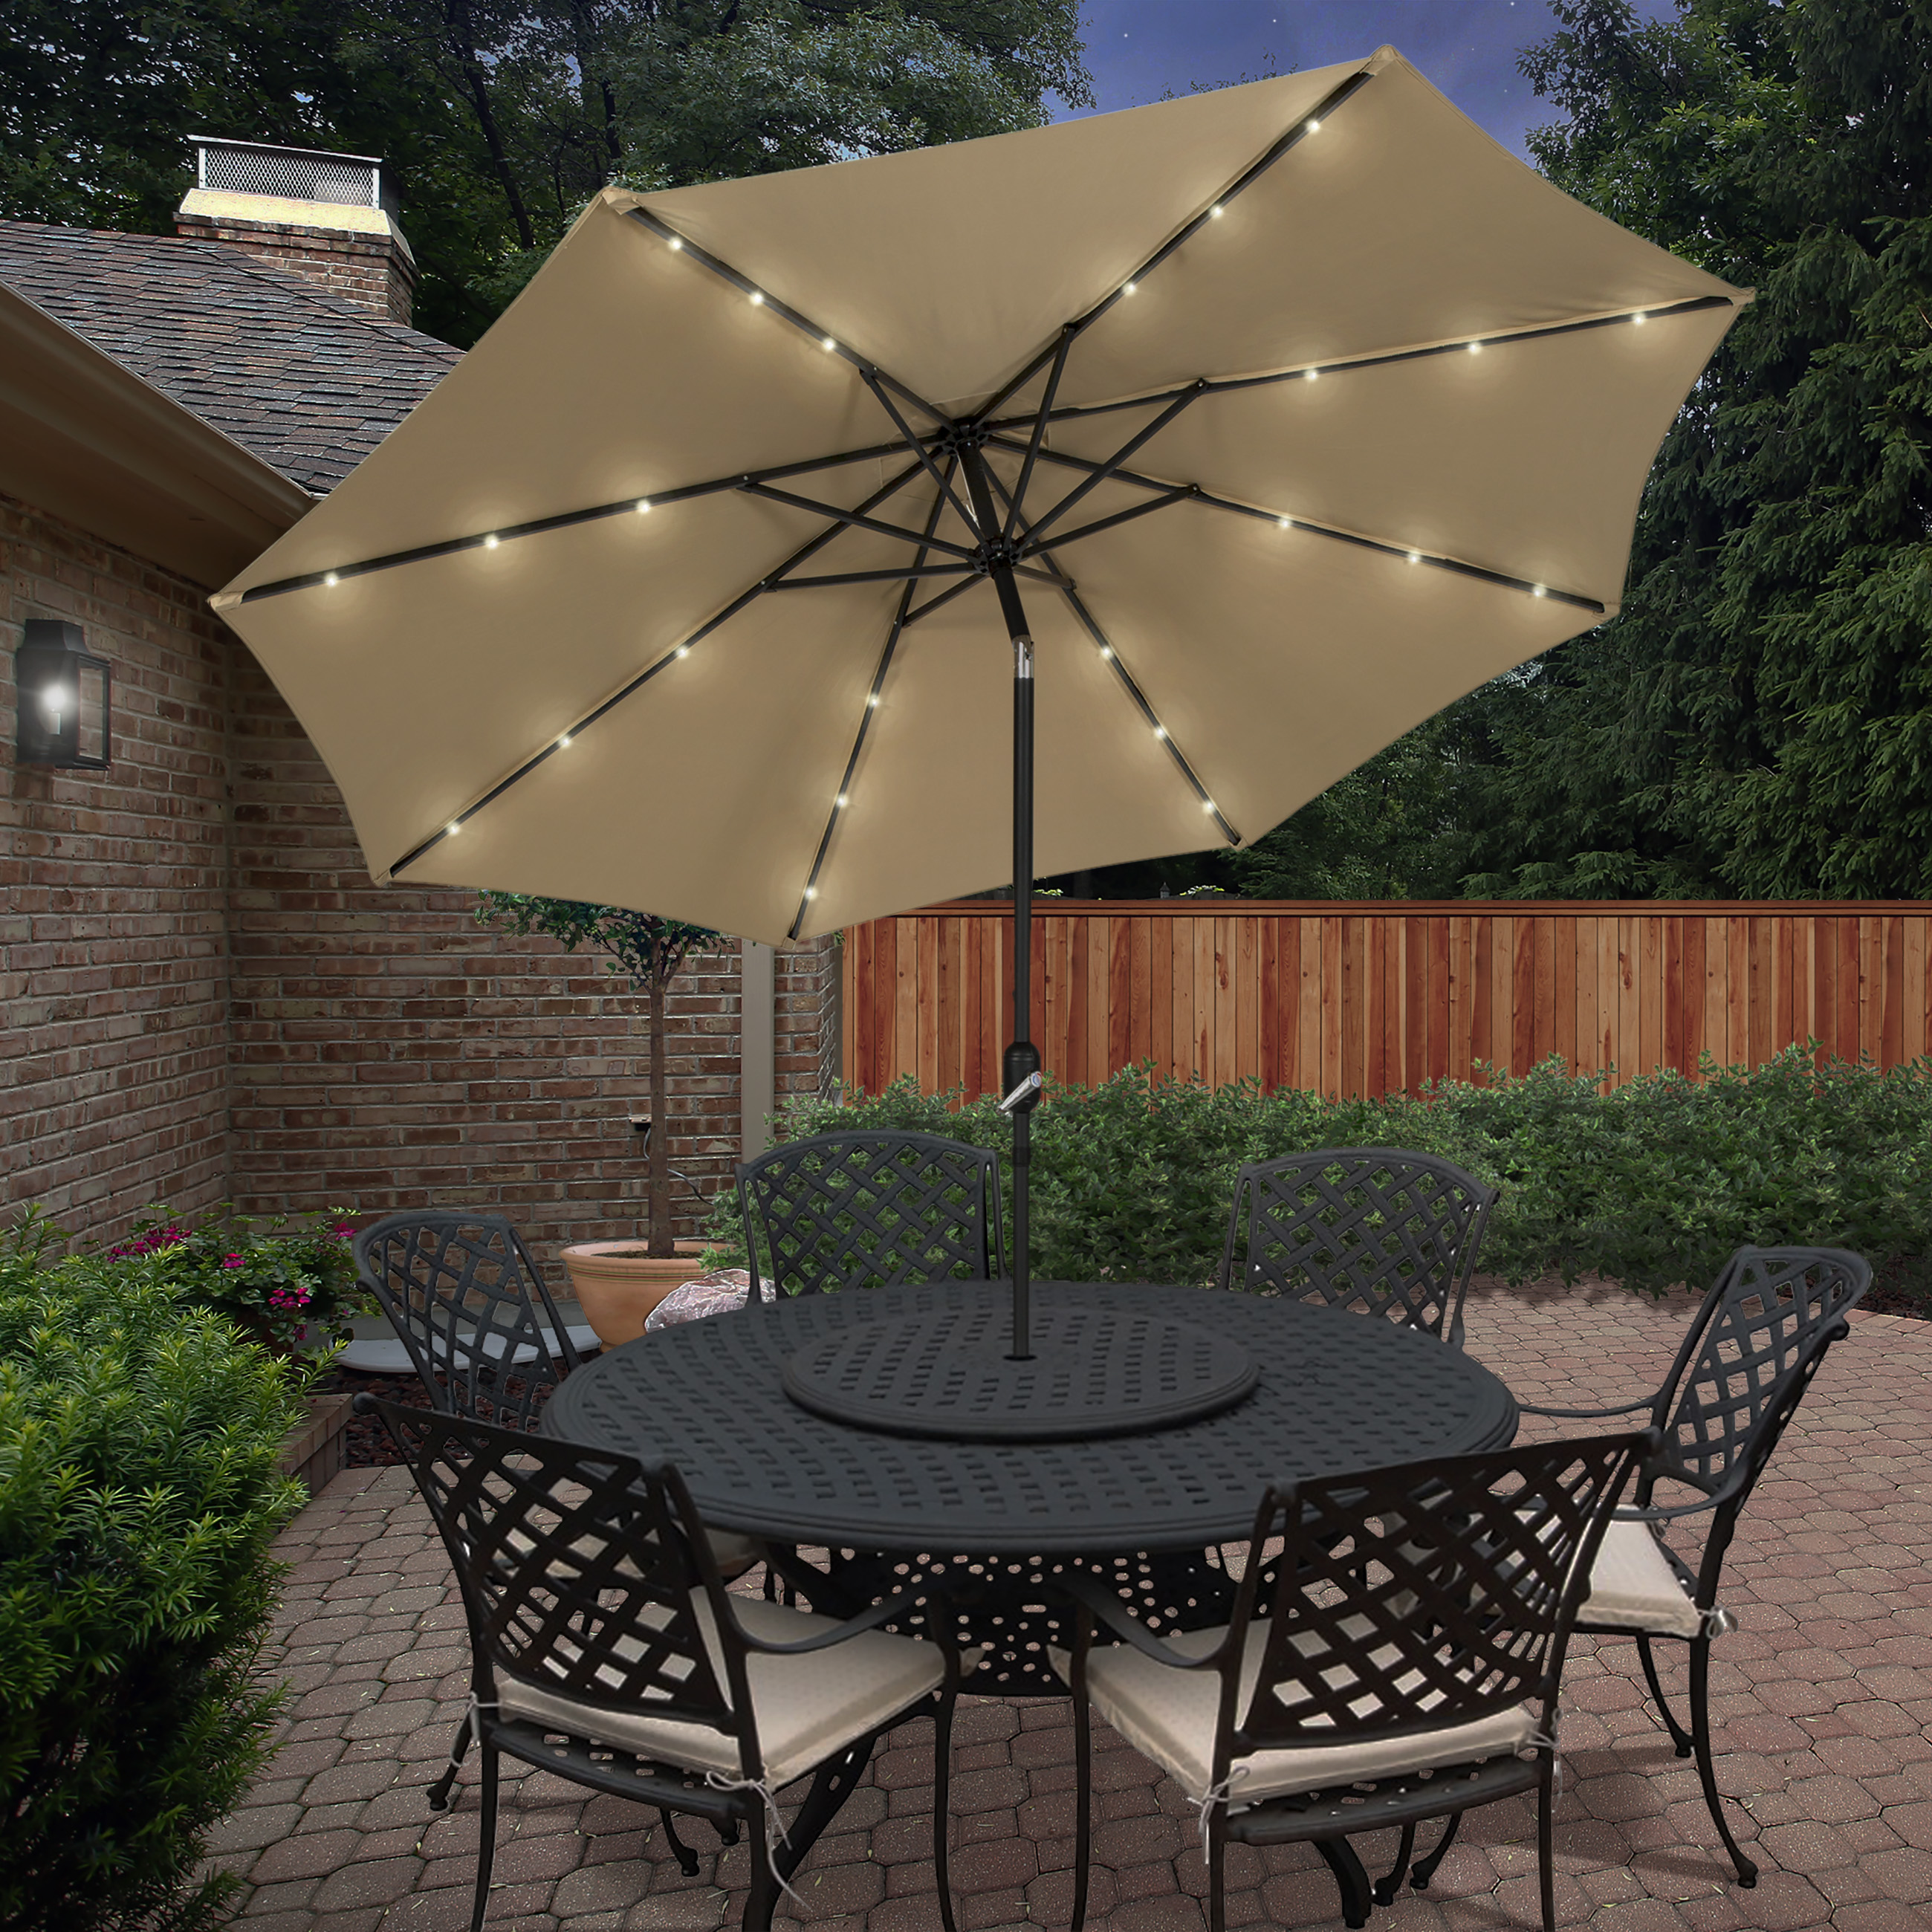 Best Choice Products 10u0027 Deluxe Solar LED Lighted Patio Umbrella With Tilt  Tan   Walmart.com